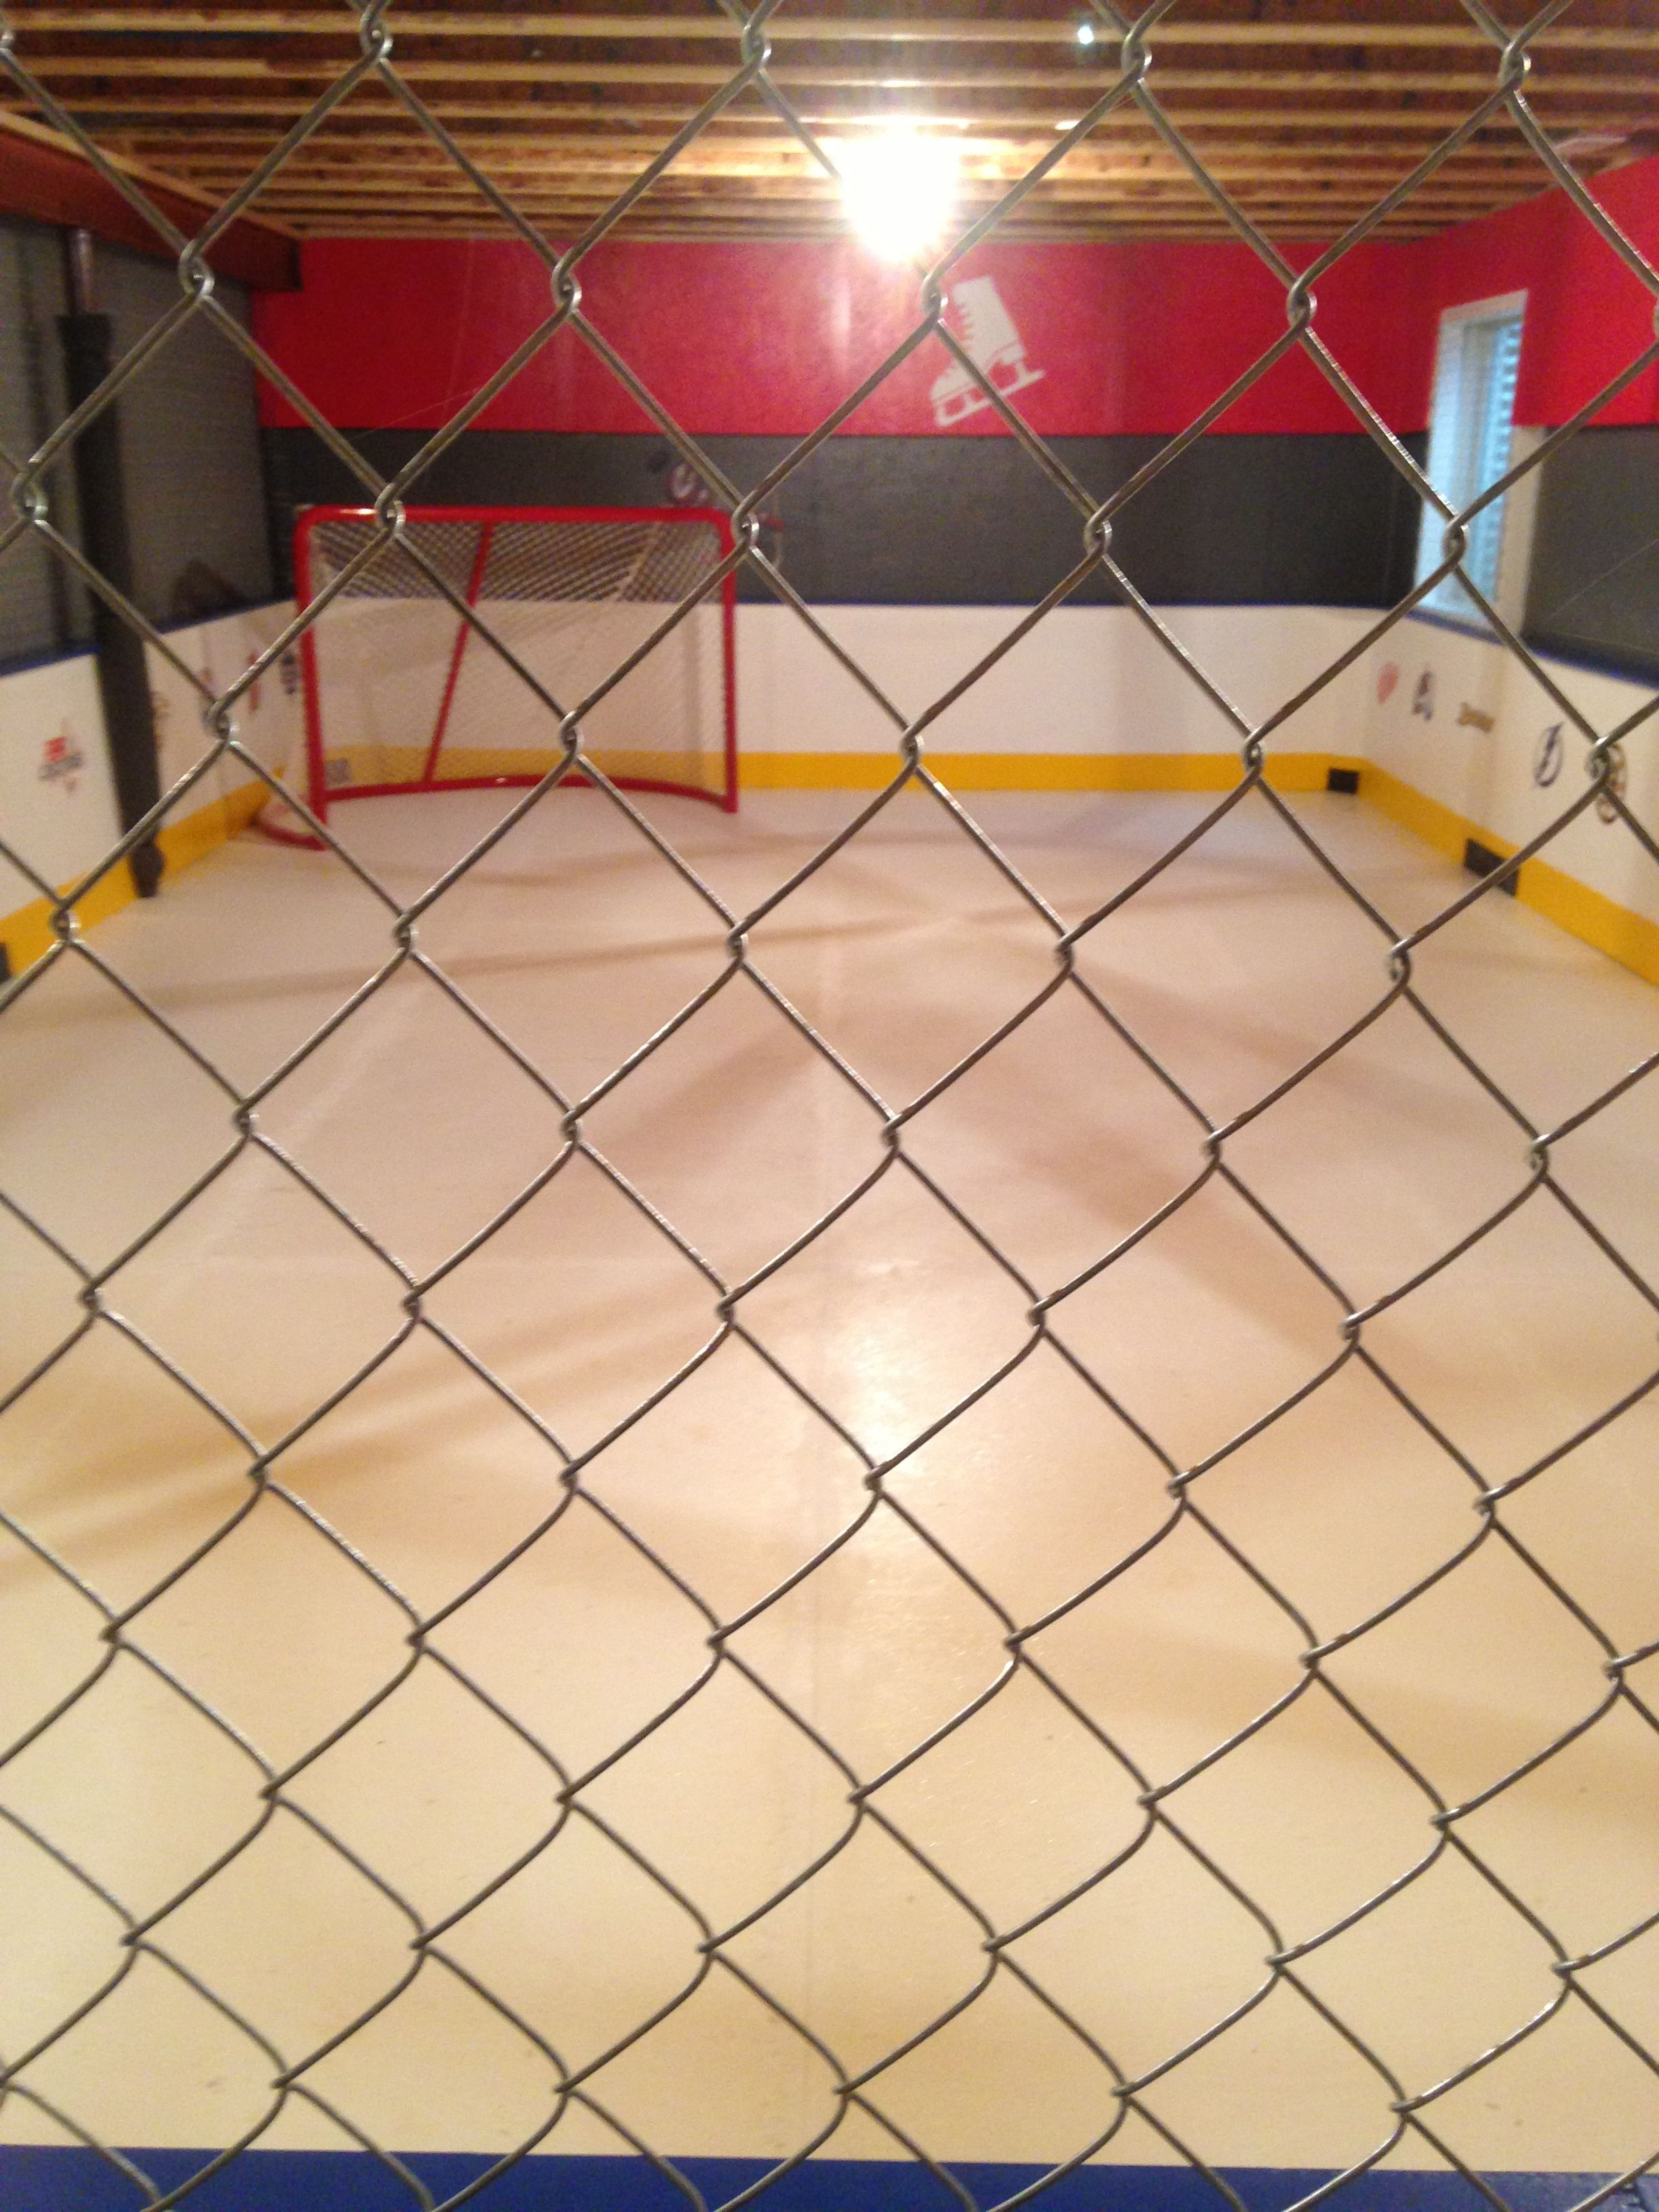 Our home ice rink 14 of 15.